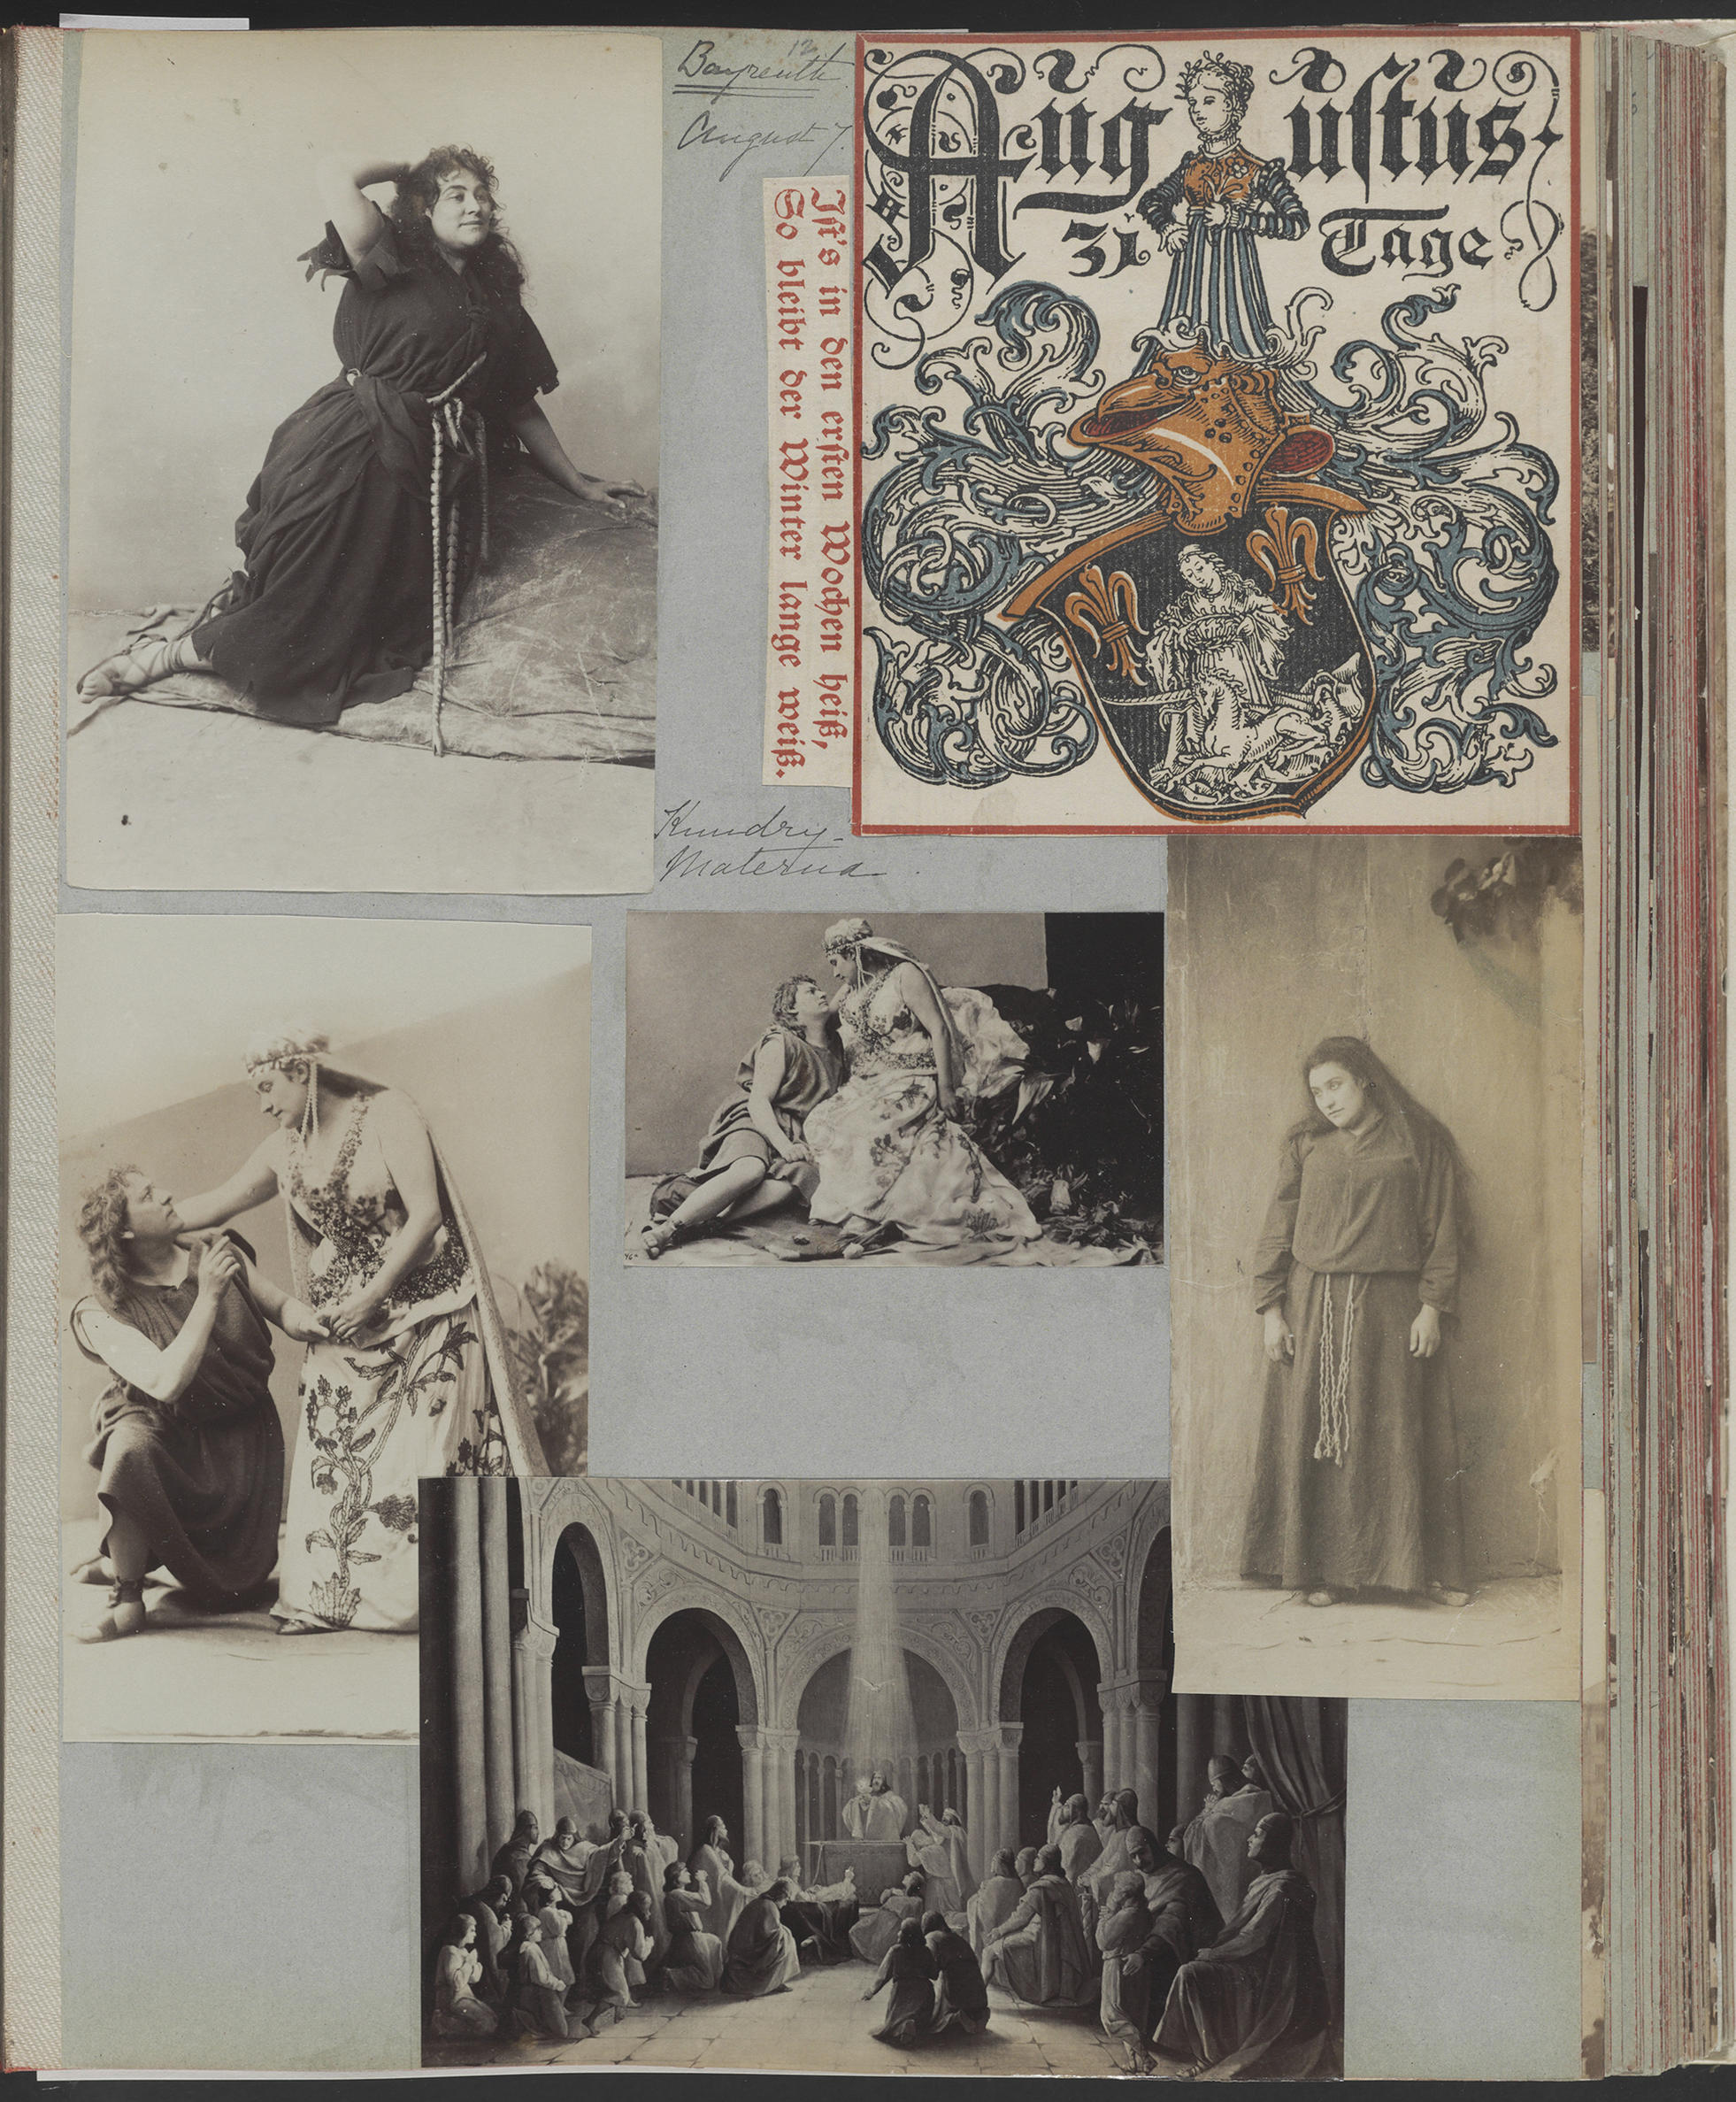 A scrapbook page with many photos of Germany.